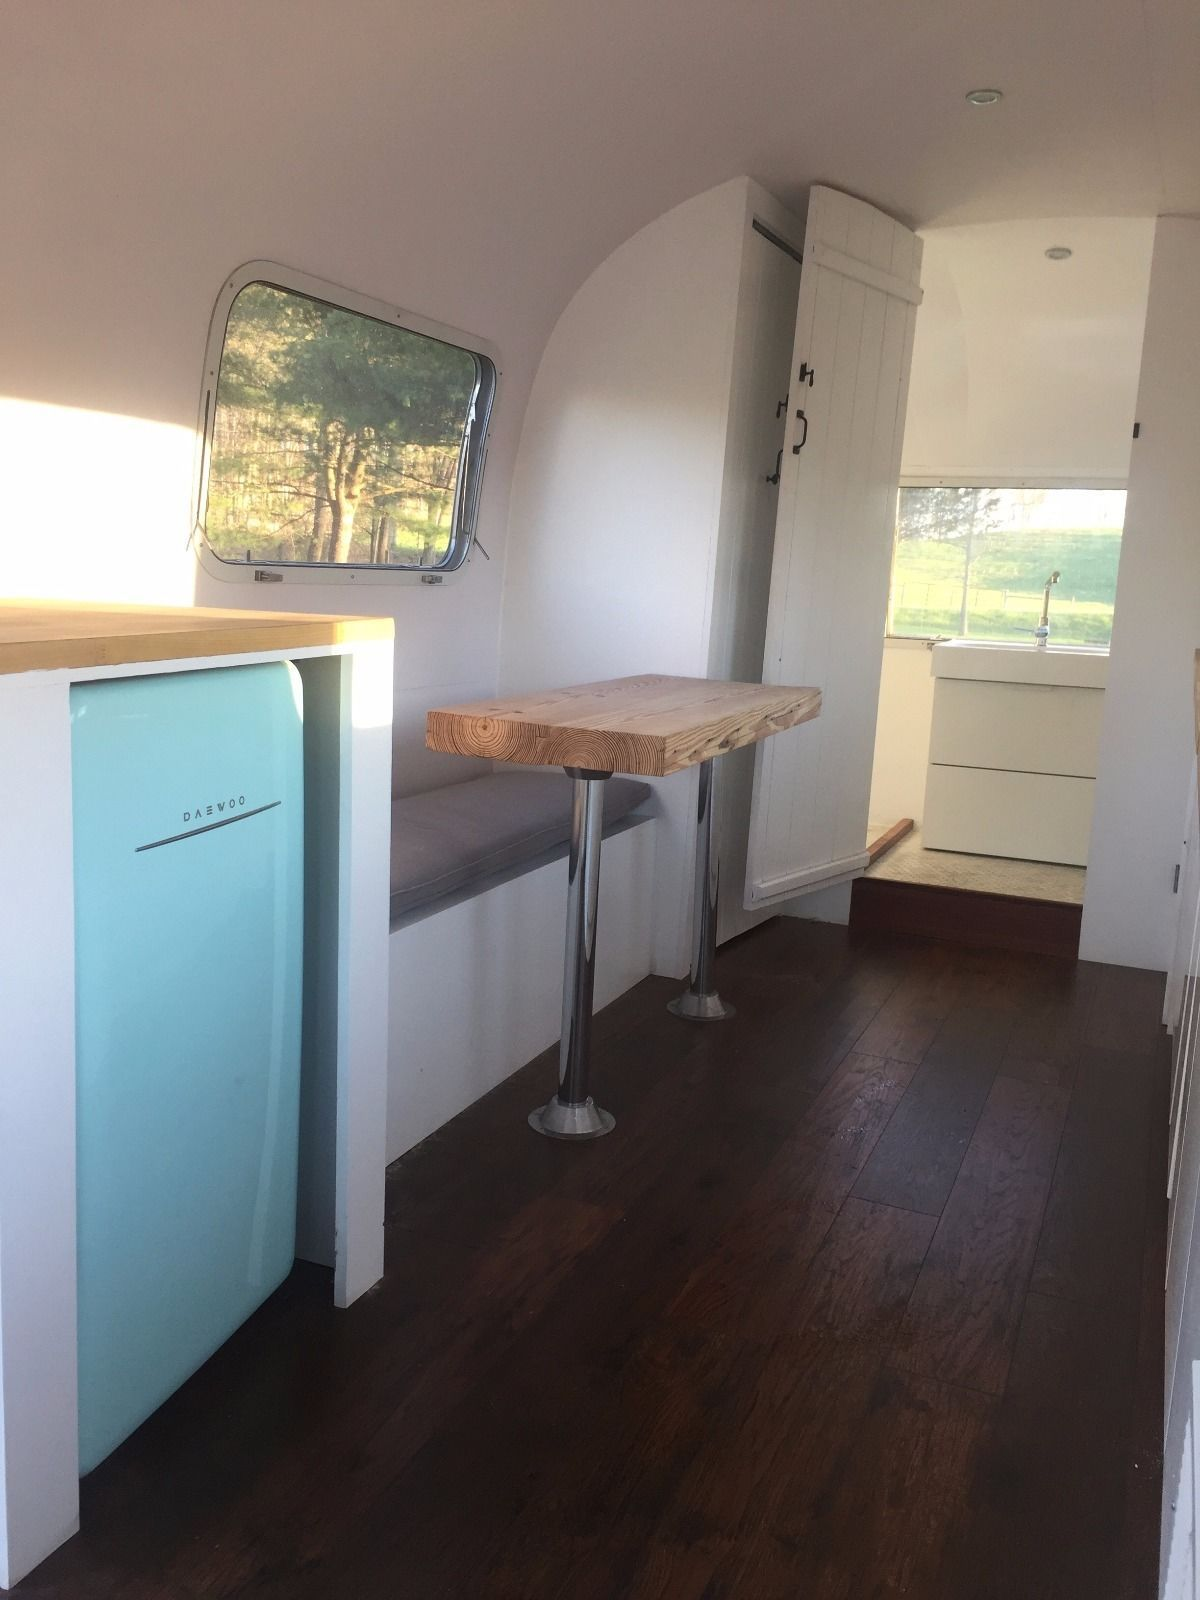 Airstream Tradewind 1969 Full Restoration And Custom Buildout Airstream Interior Airstream Airstream For Sale